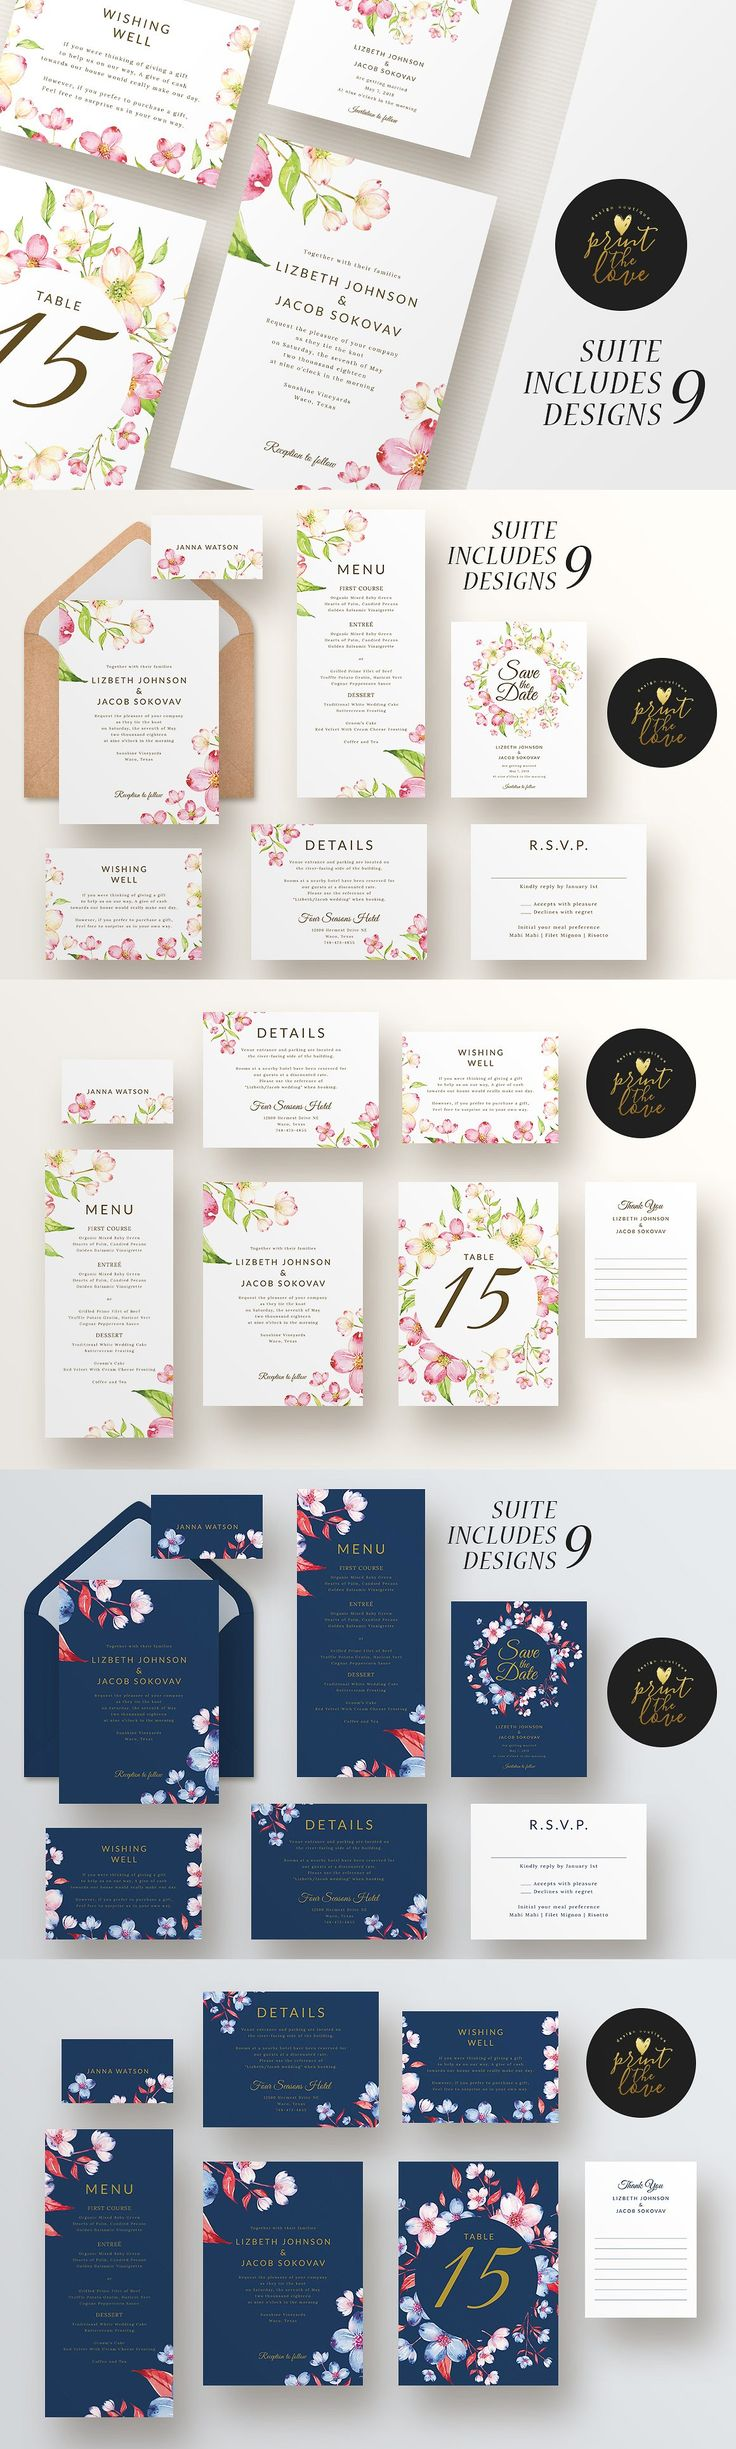 free wedding invitation psd%0A Wedding Invitation Suite Template PSD  PDF